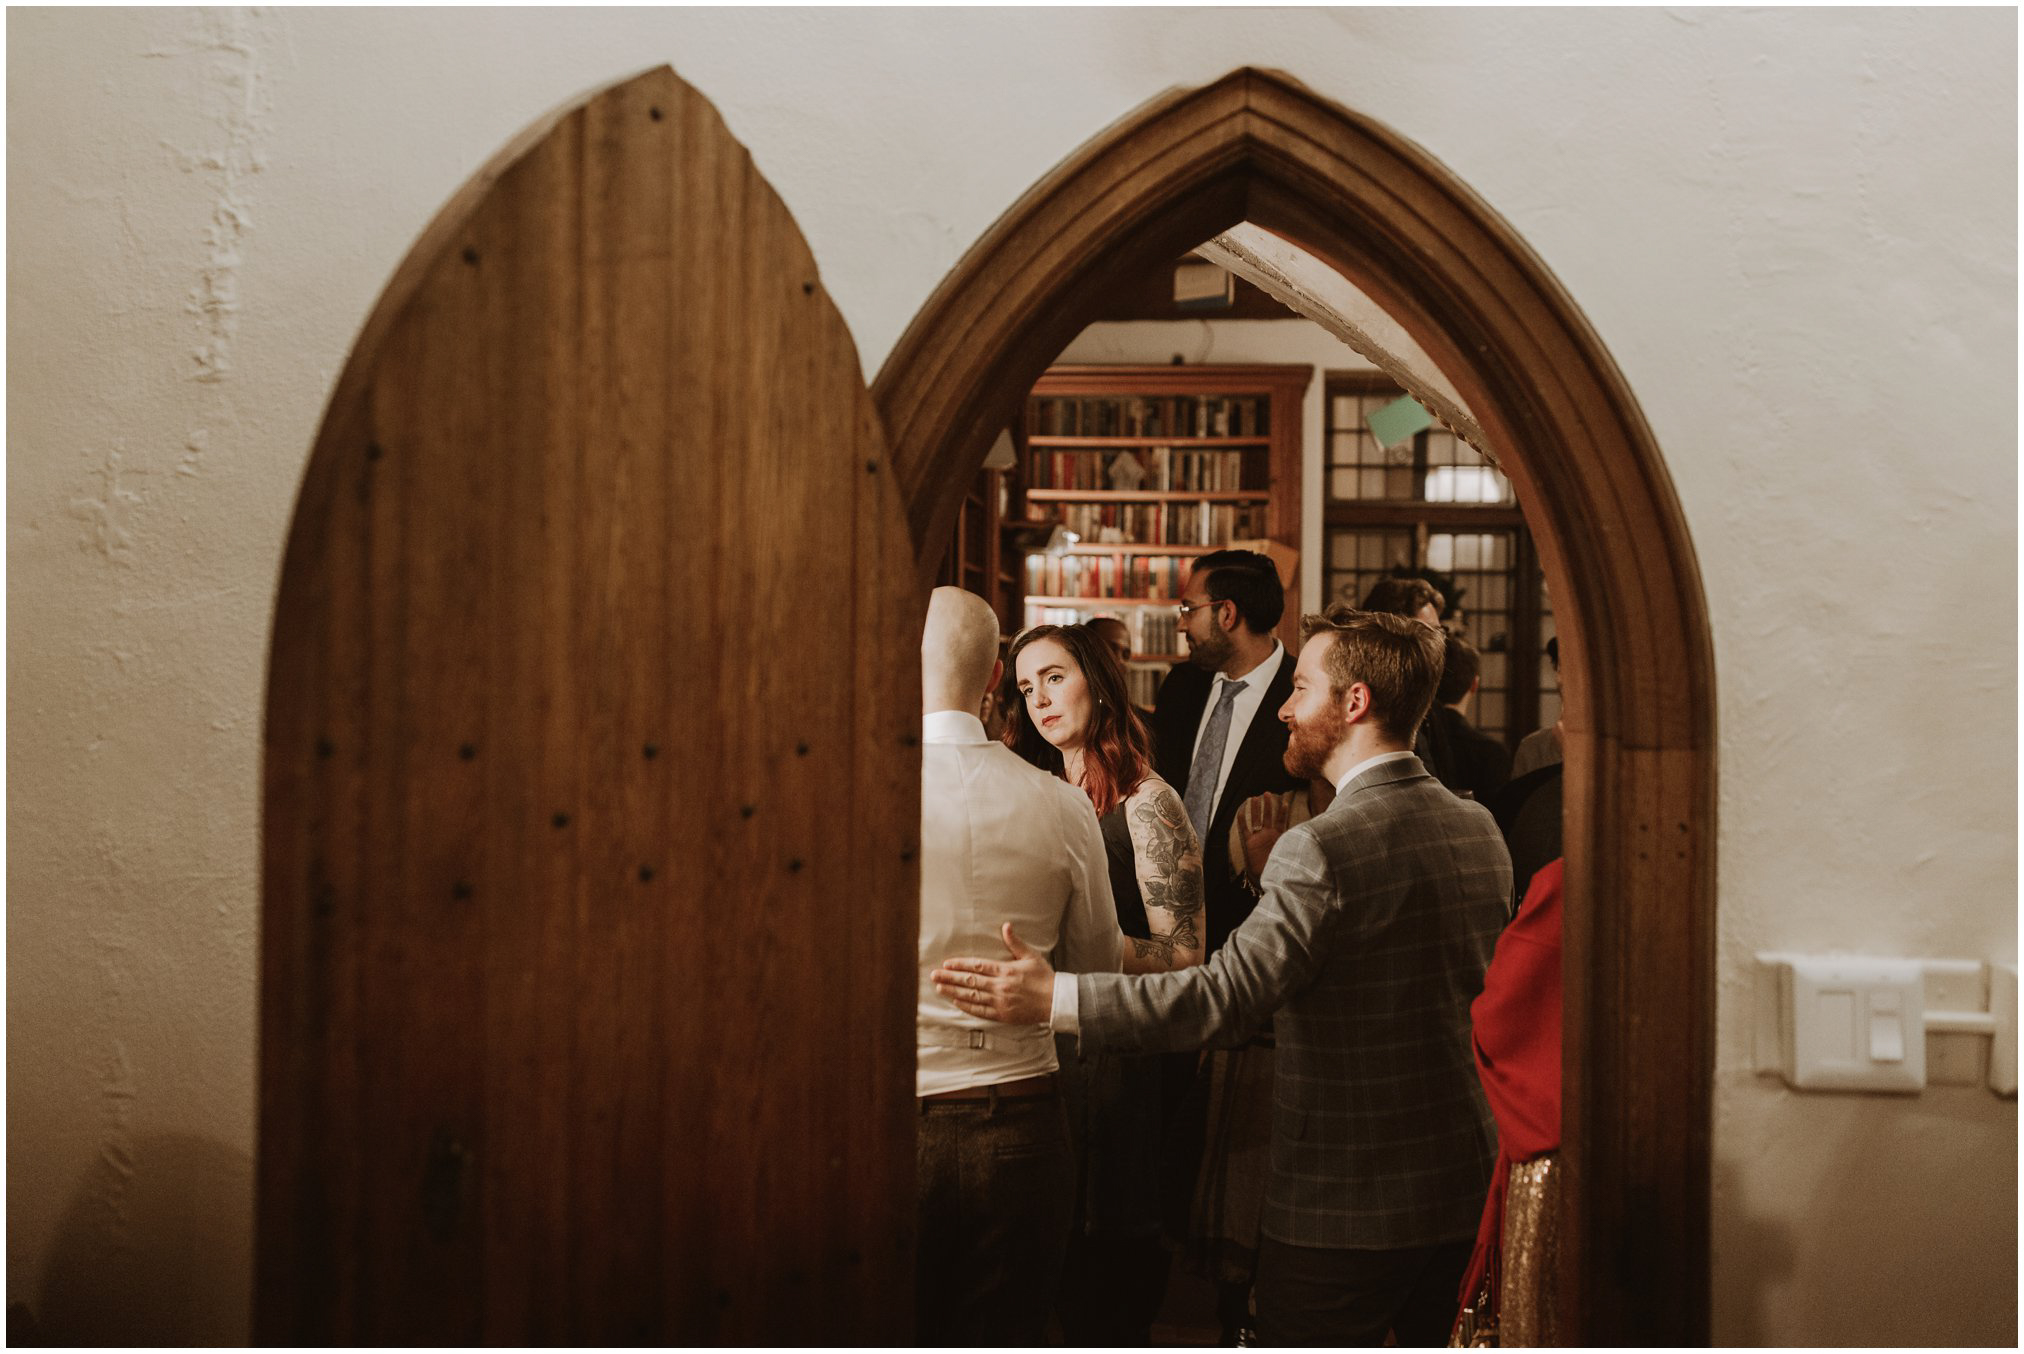 Harry Potter Themed Winter Wedding Reception at Cloisters Castle